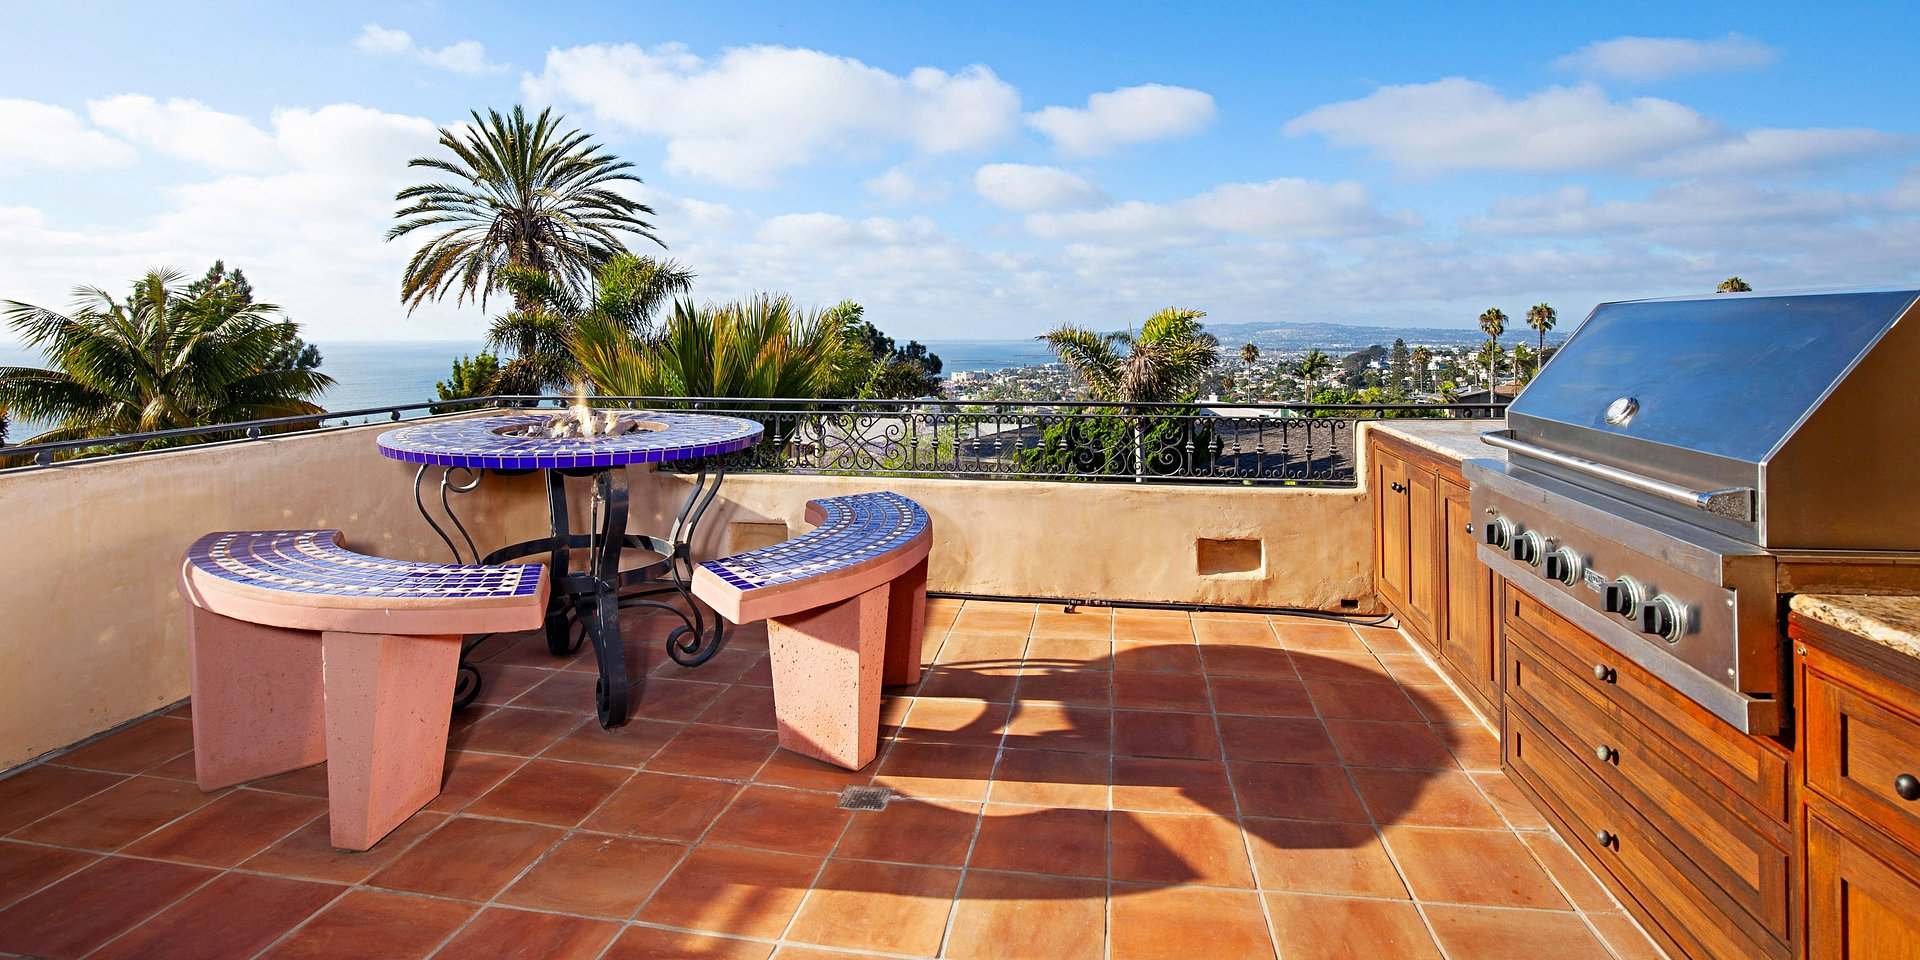 Coldwell Banker Residential Brokerage Lists San Diego Sunset Cliffs Property for $3.7 Million